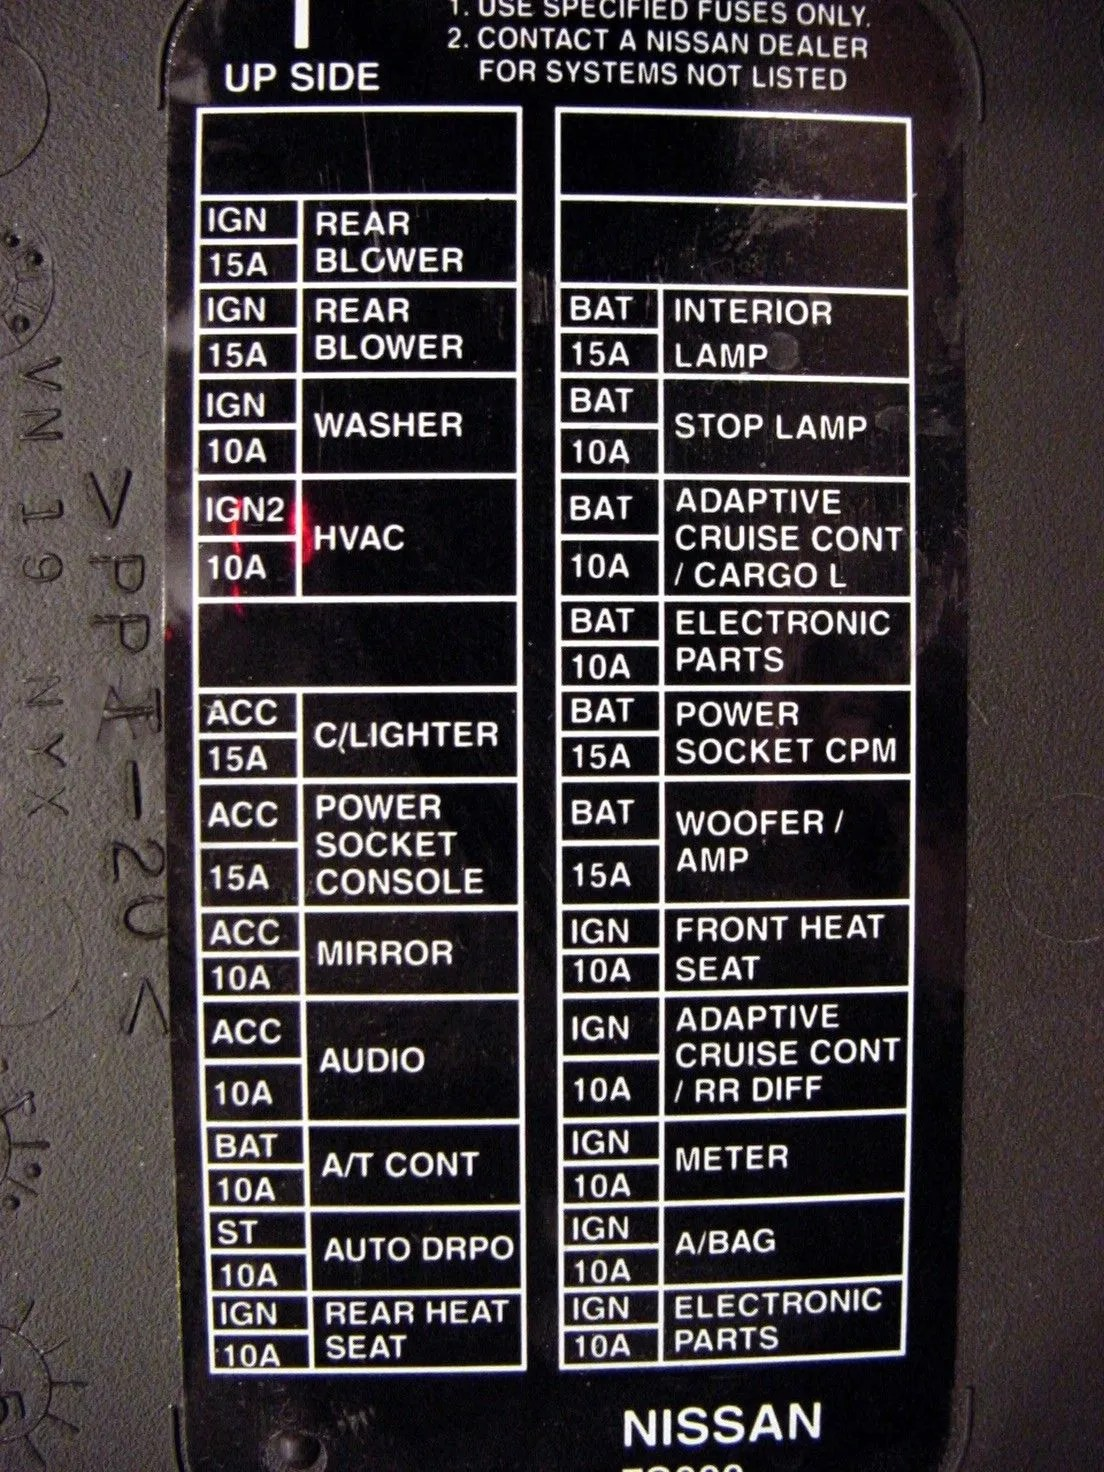 hight resolution of 2005 nissan armada fuse box diagram wiring diagram forward 2005 nissan pathfinder fuse box diagram 2005 nissan armada fuse panel diagram